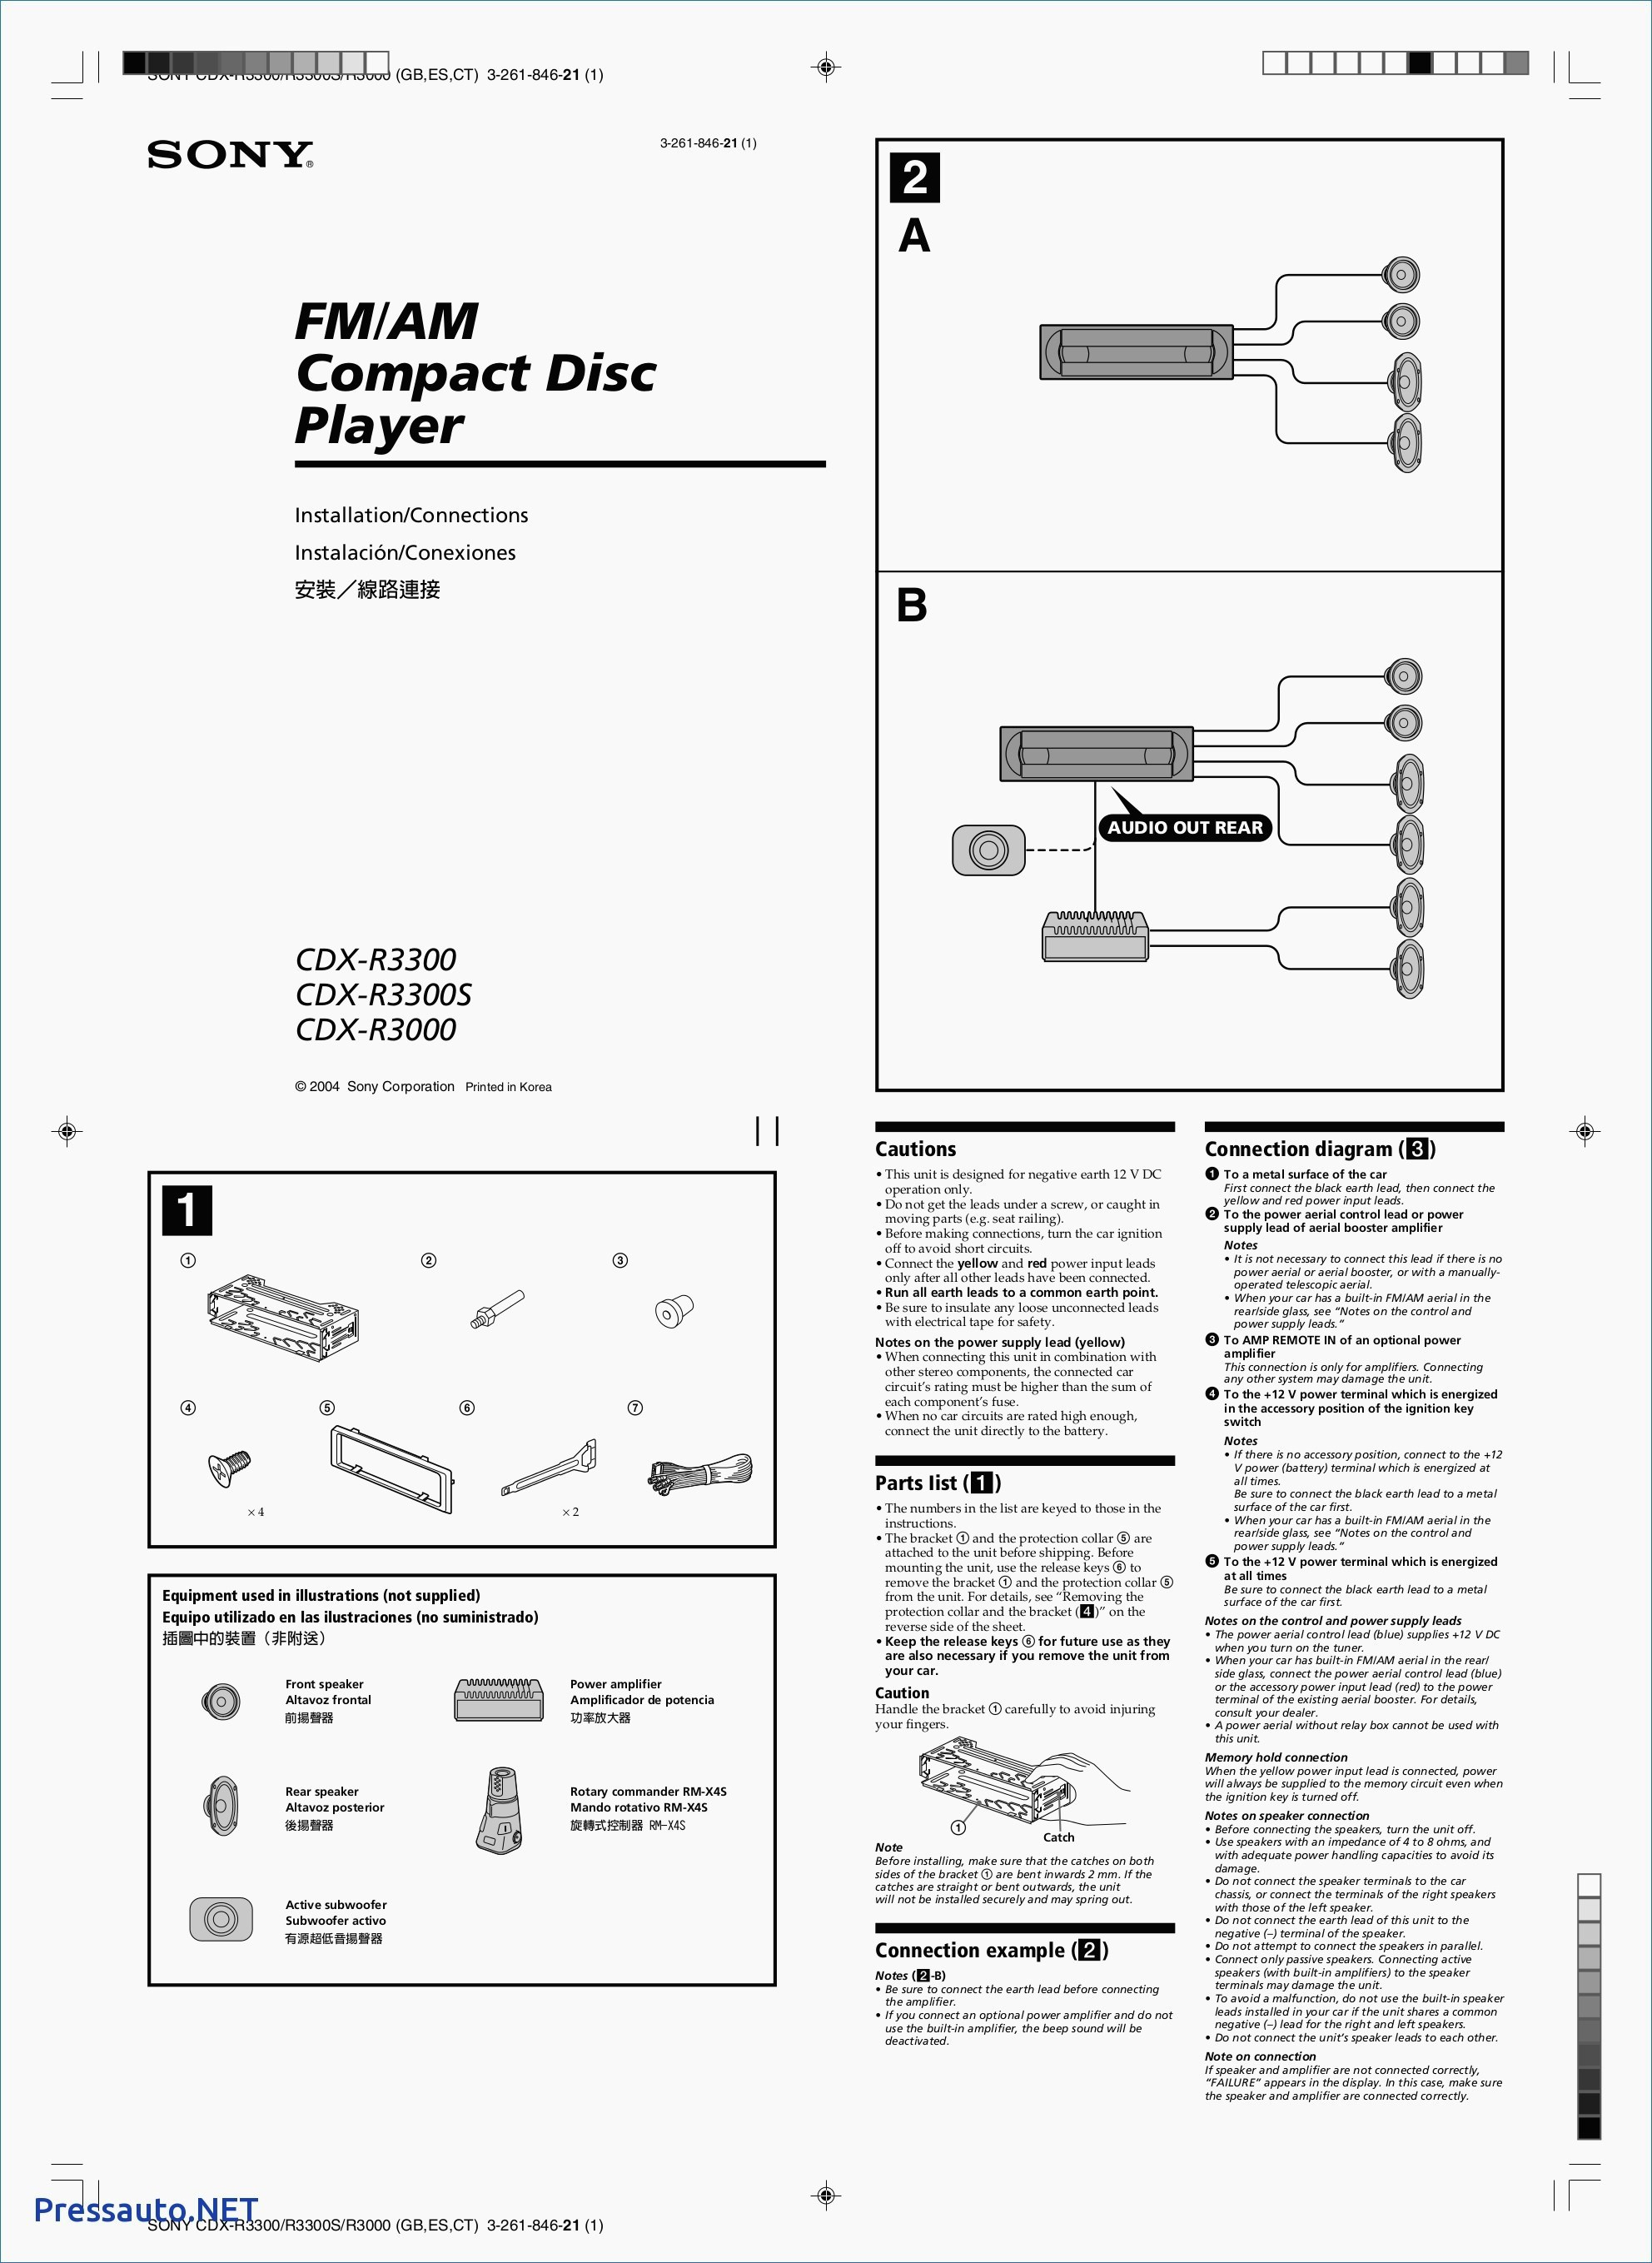 Sony Car Stereo Cdx Gt565Up Wiring Diagram | Wiring Diagram - Sony Cdx-Gt565Up Wiring Diagram